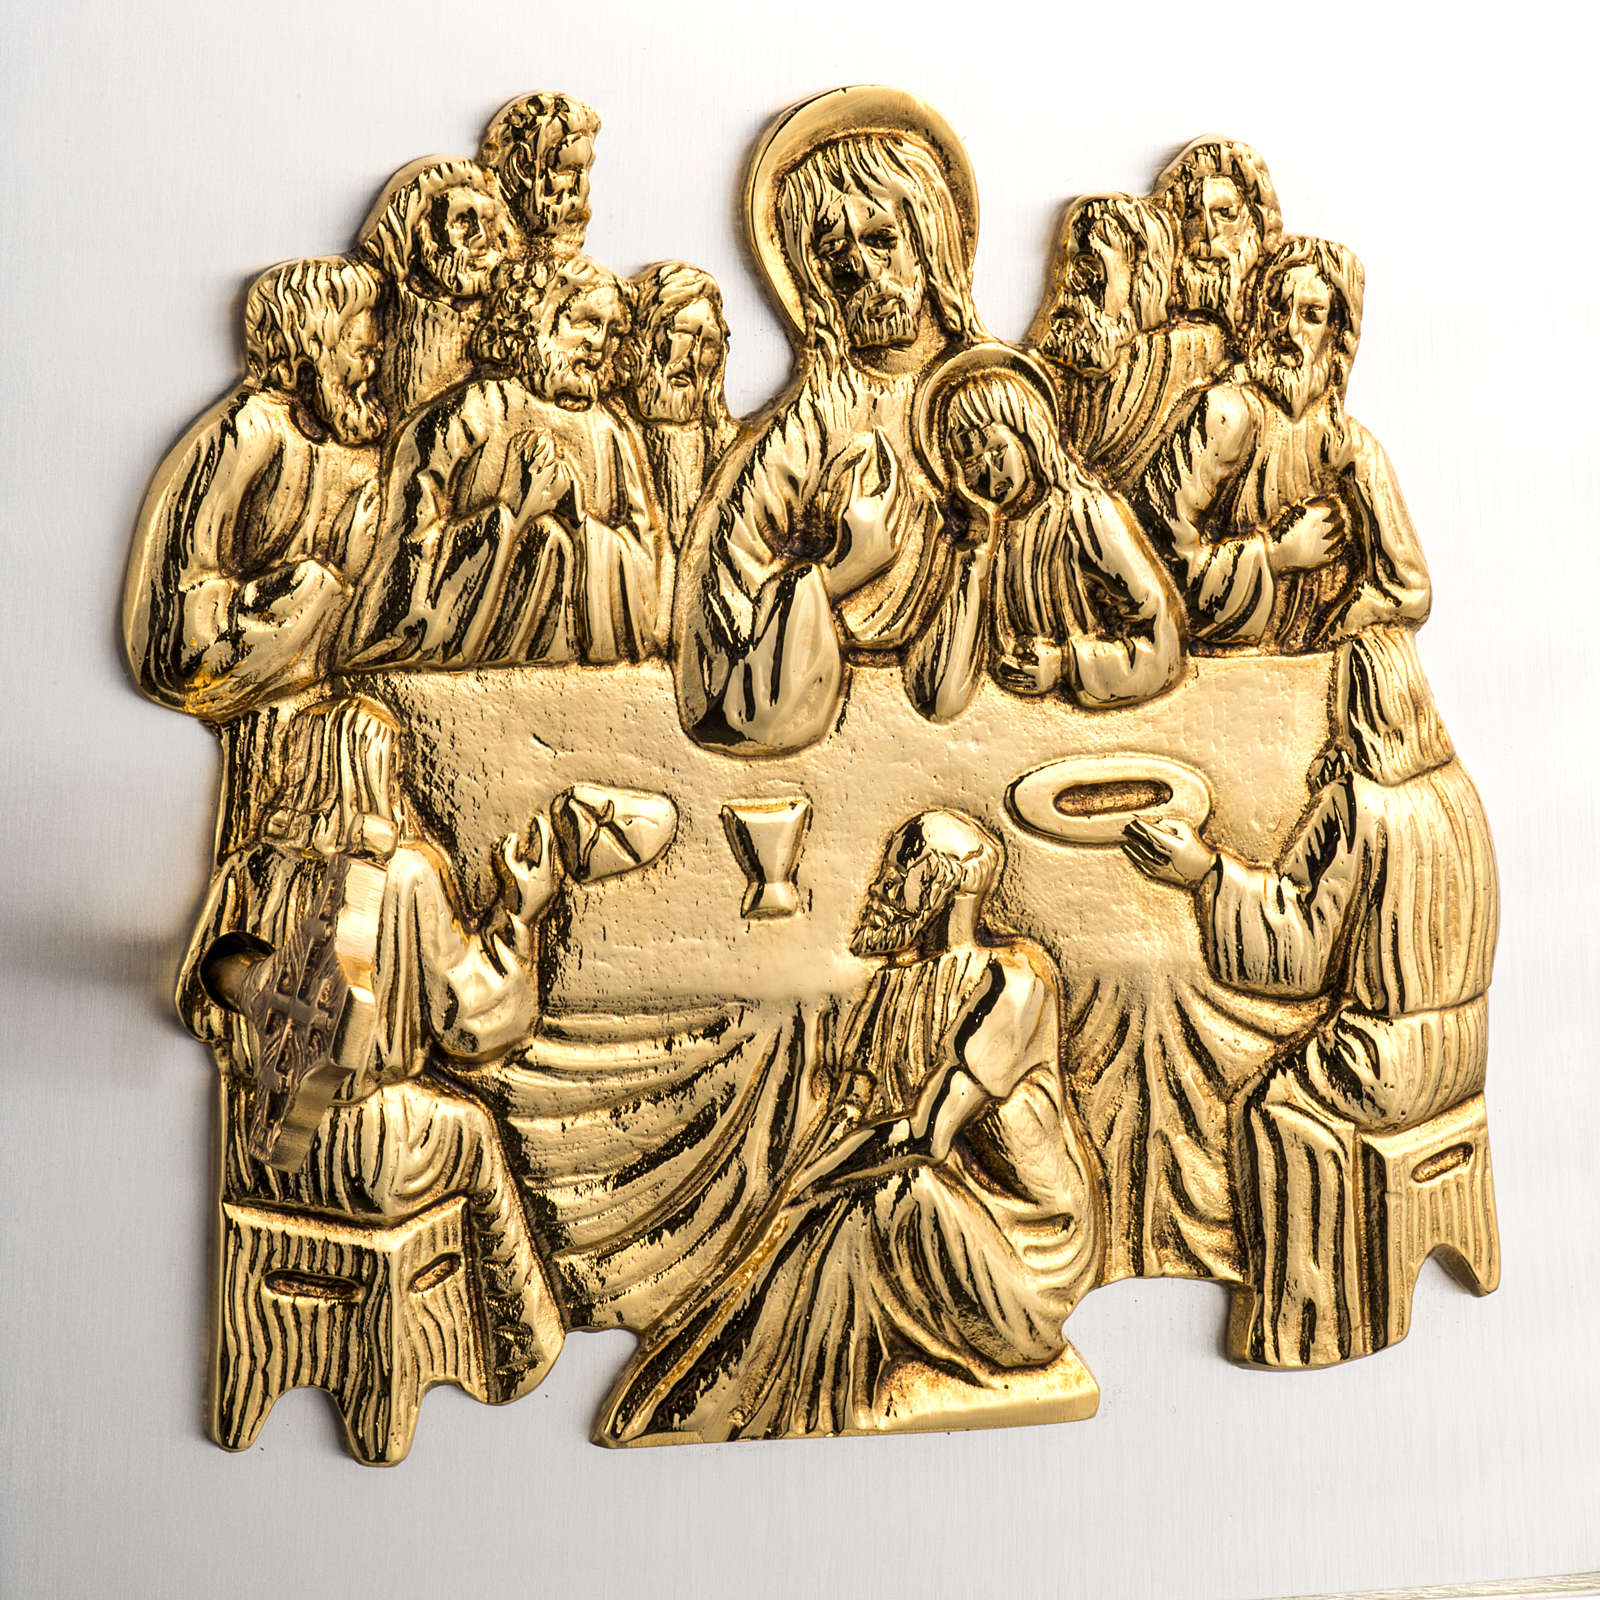 Wall Tabernacle with Last Supper in wood and cast brass 4